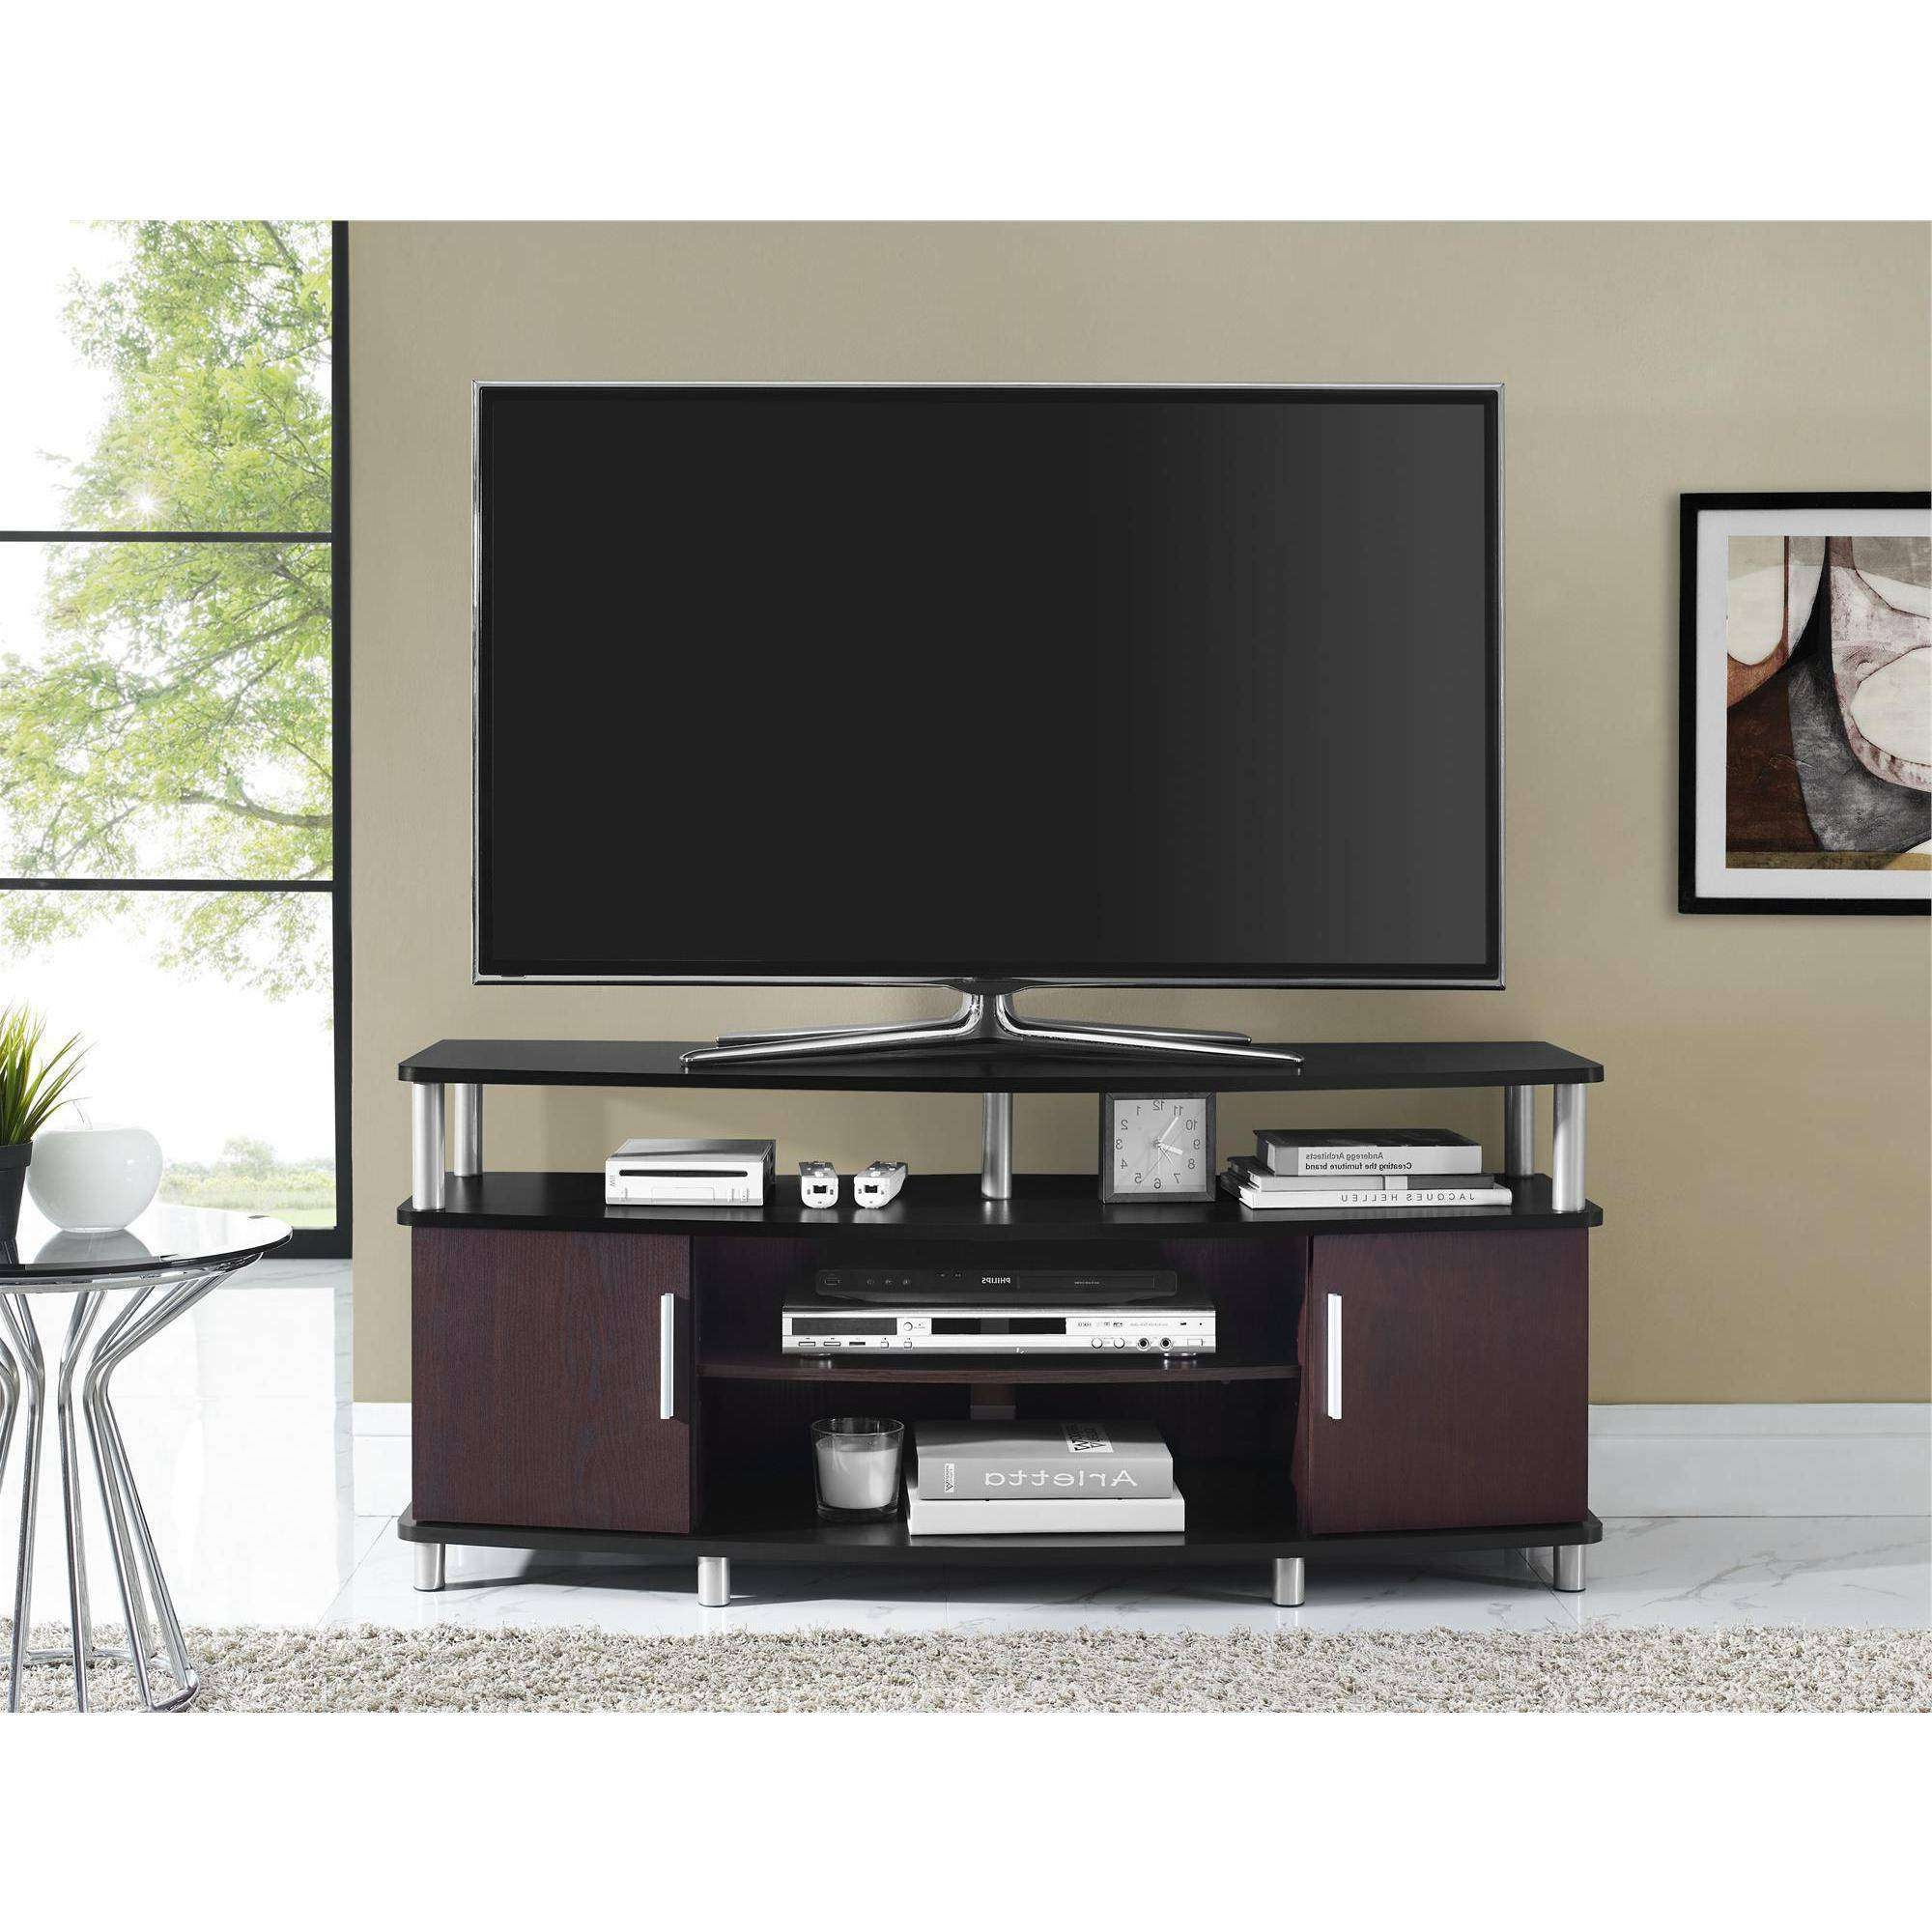 Flat Screen Tv Stands With Mount Furnitures Modern For Inch Throughout Modern Tv Stands For 60 Inch Tvs (View 6 of 15)